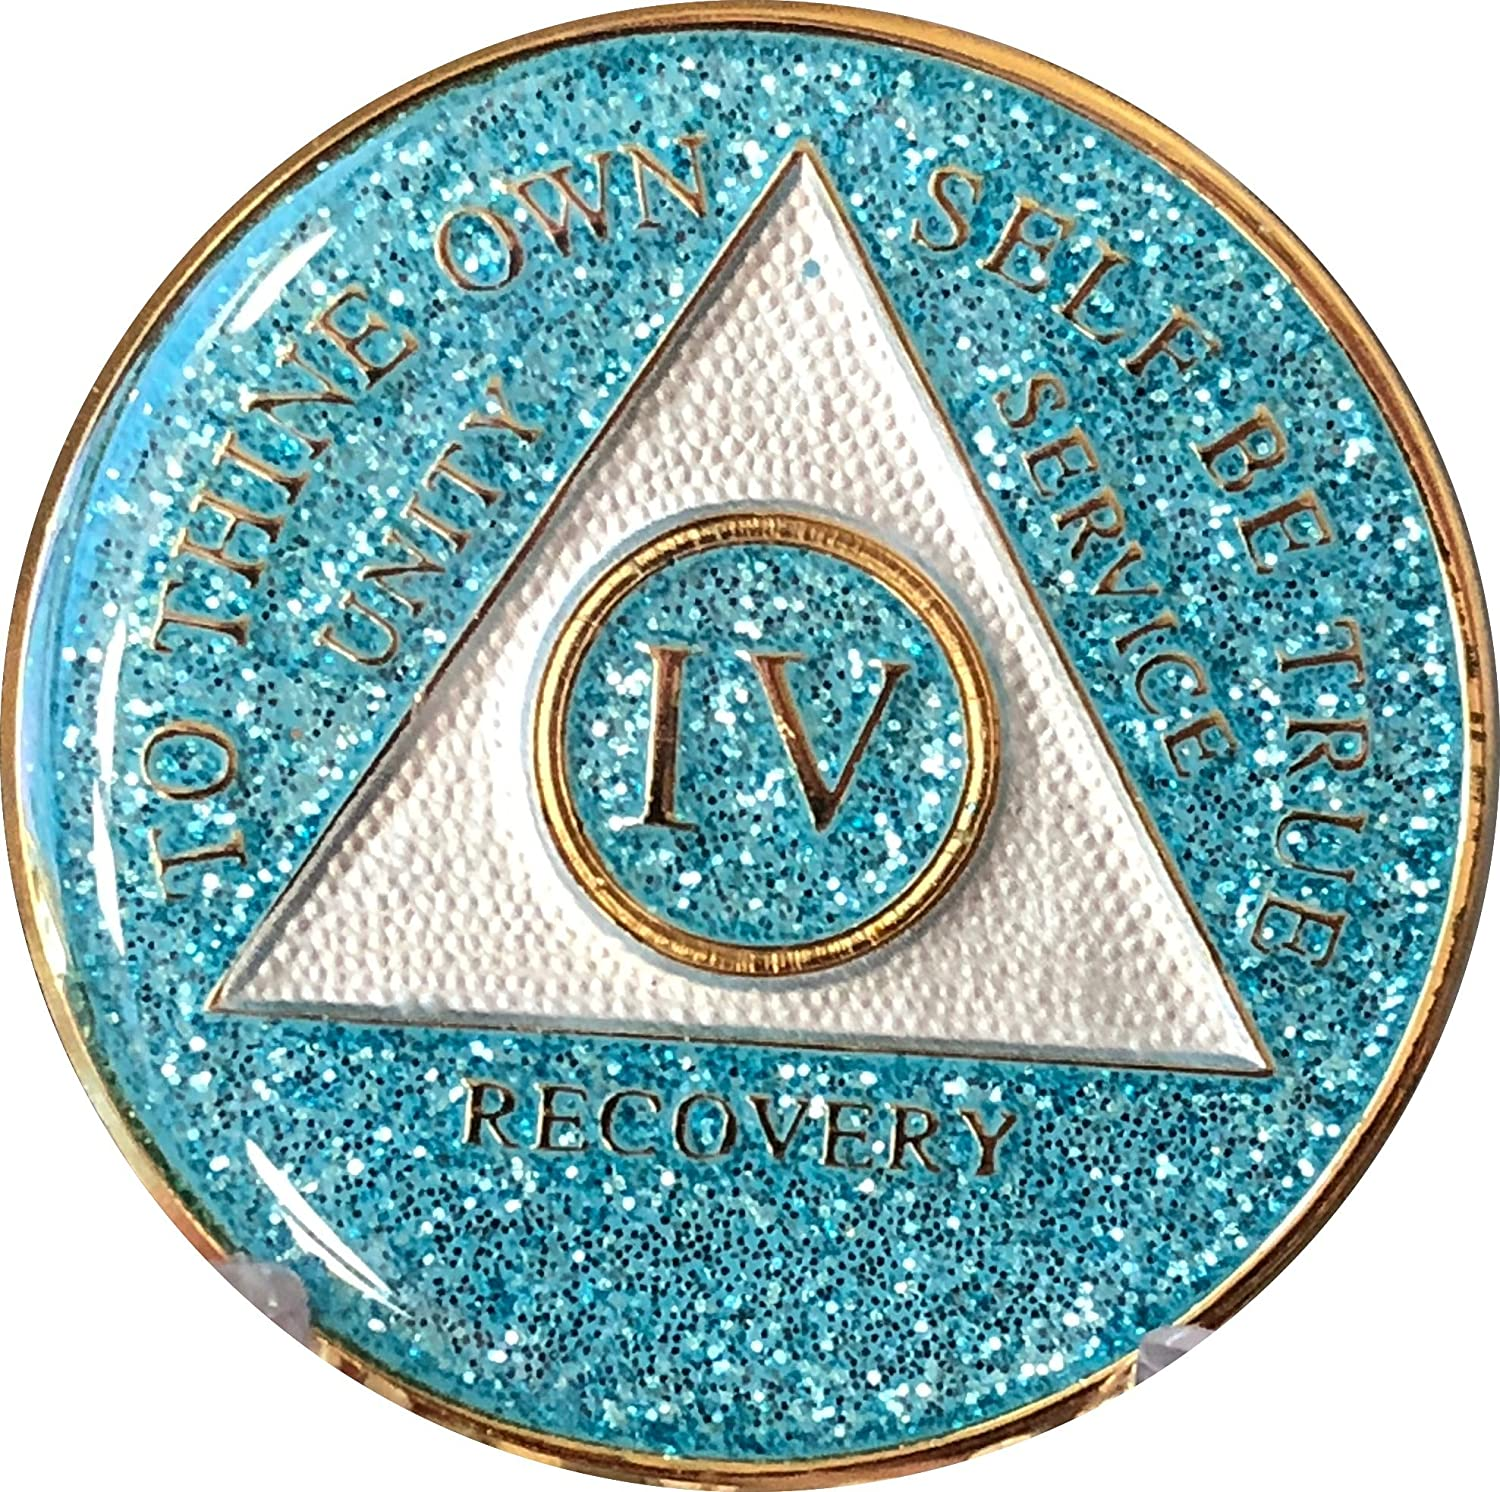 4 Year AA Medallion Indianapolis Mall Aqua Gorgeous Bling Tri-Plate Turquoise Glitter Blue